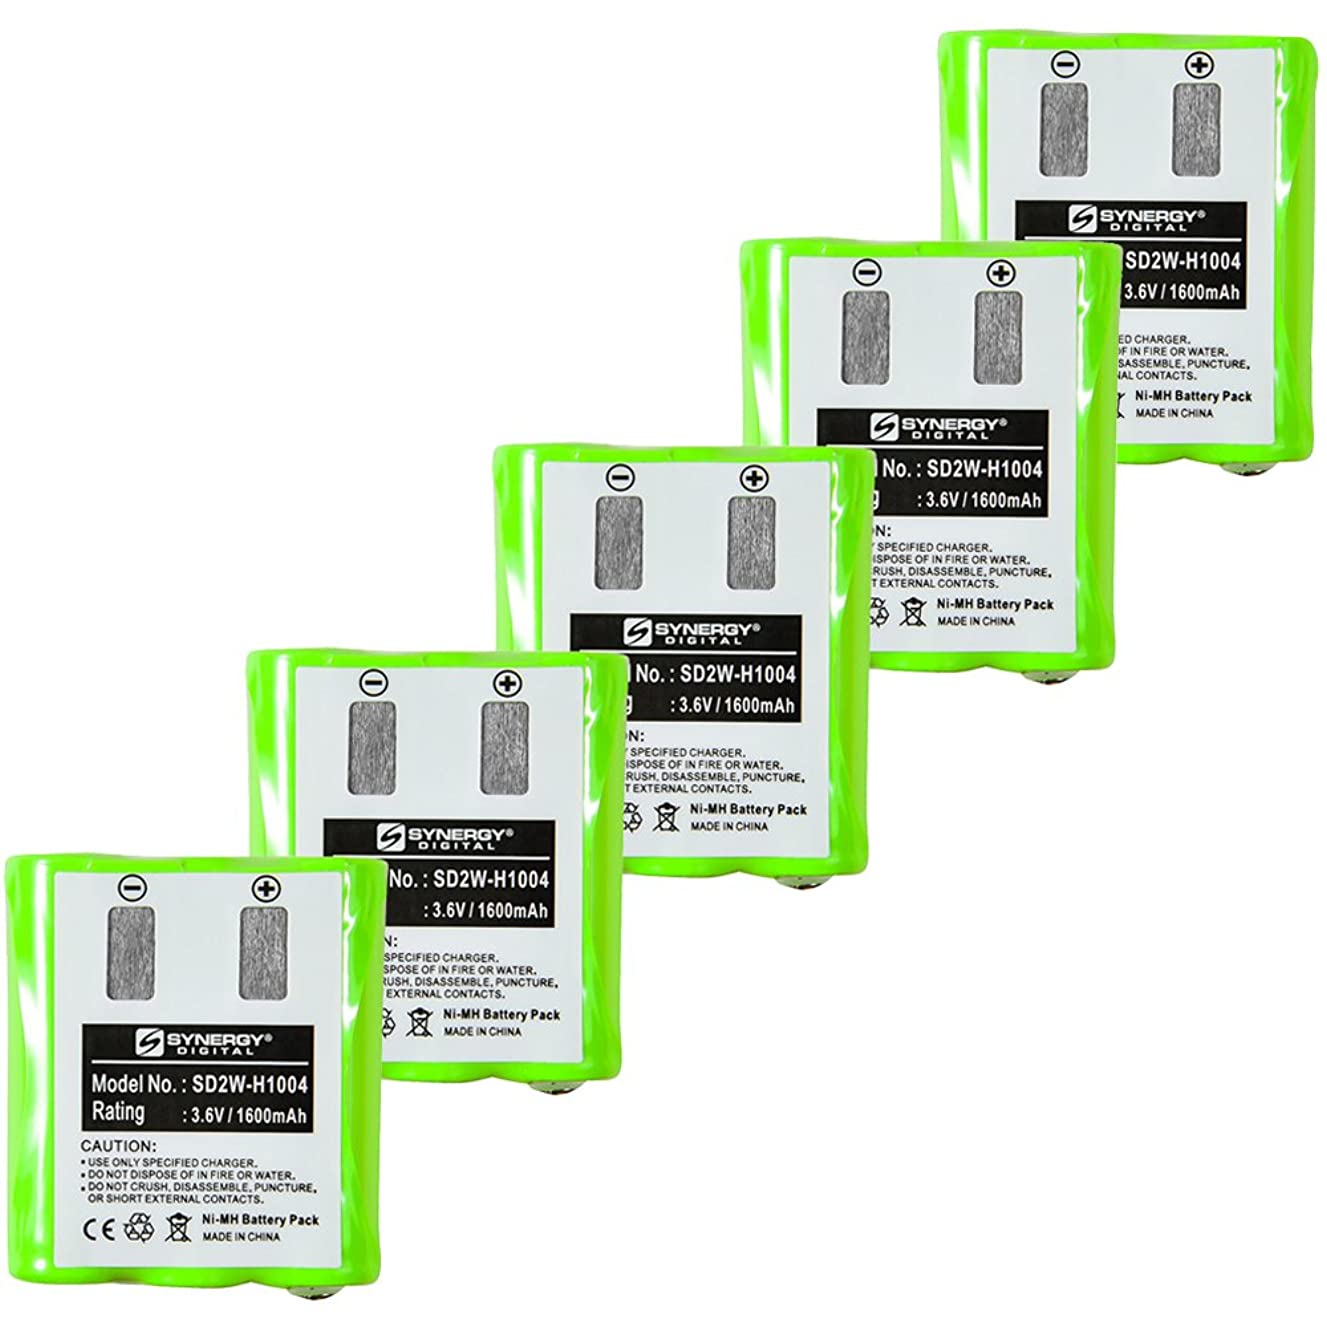 Motorola KEBT-1300 2-Way Radio Battery Combo-Pack Includes: 5 x SD2W-H1004 Batteries